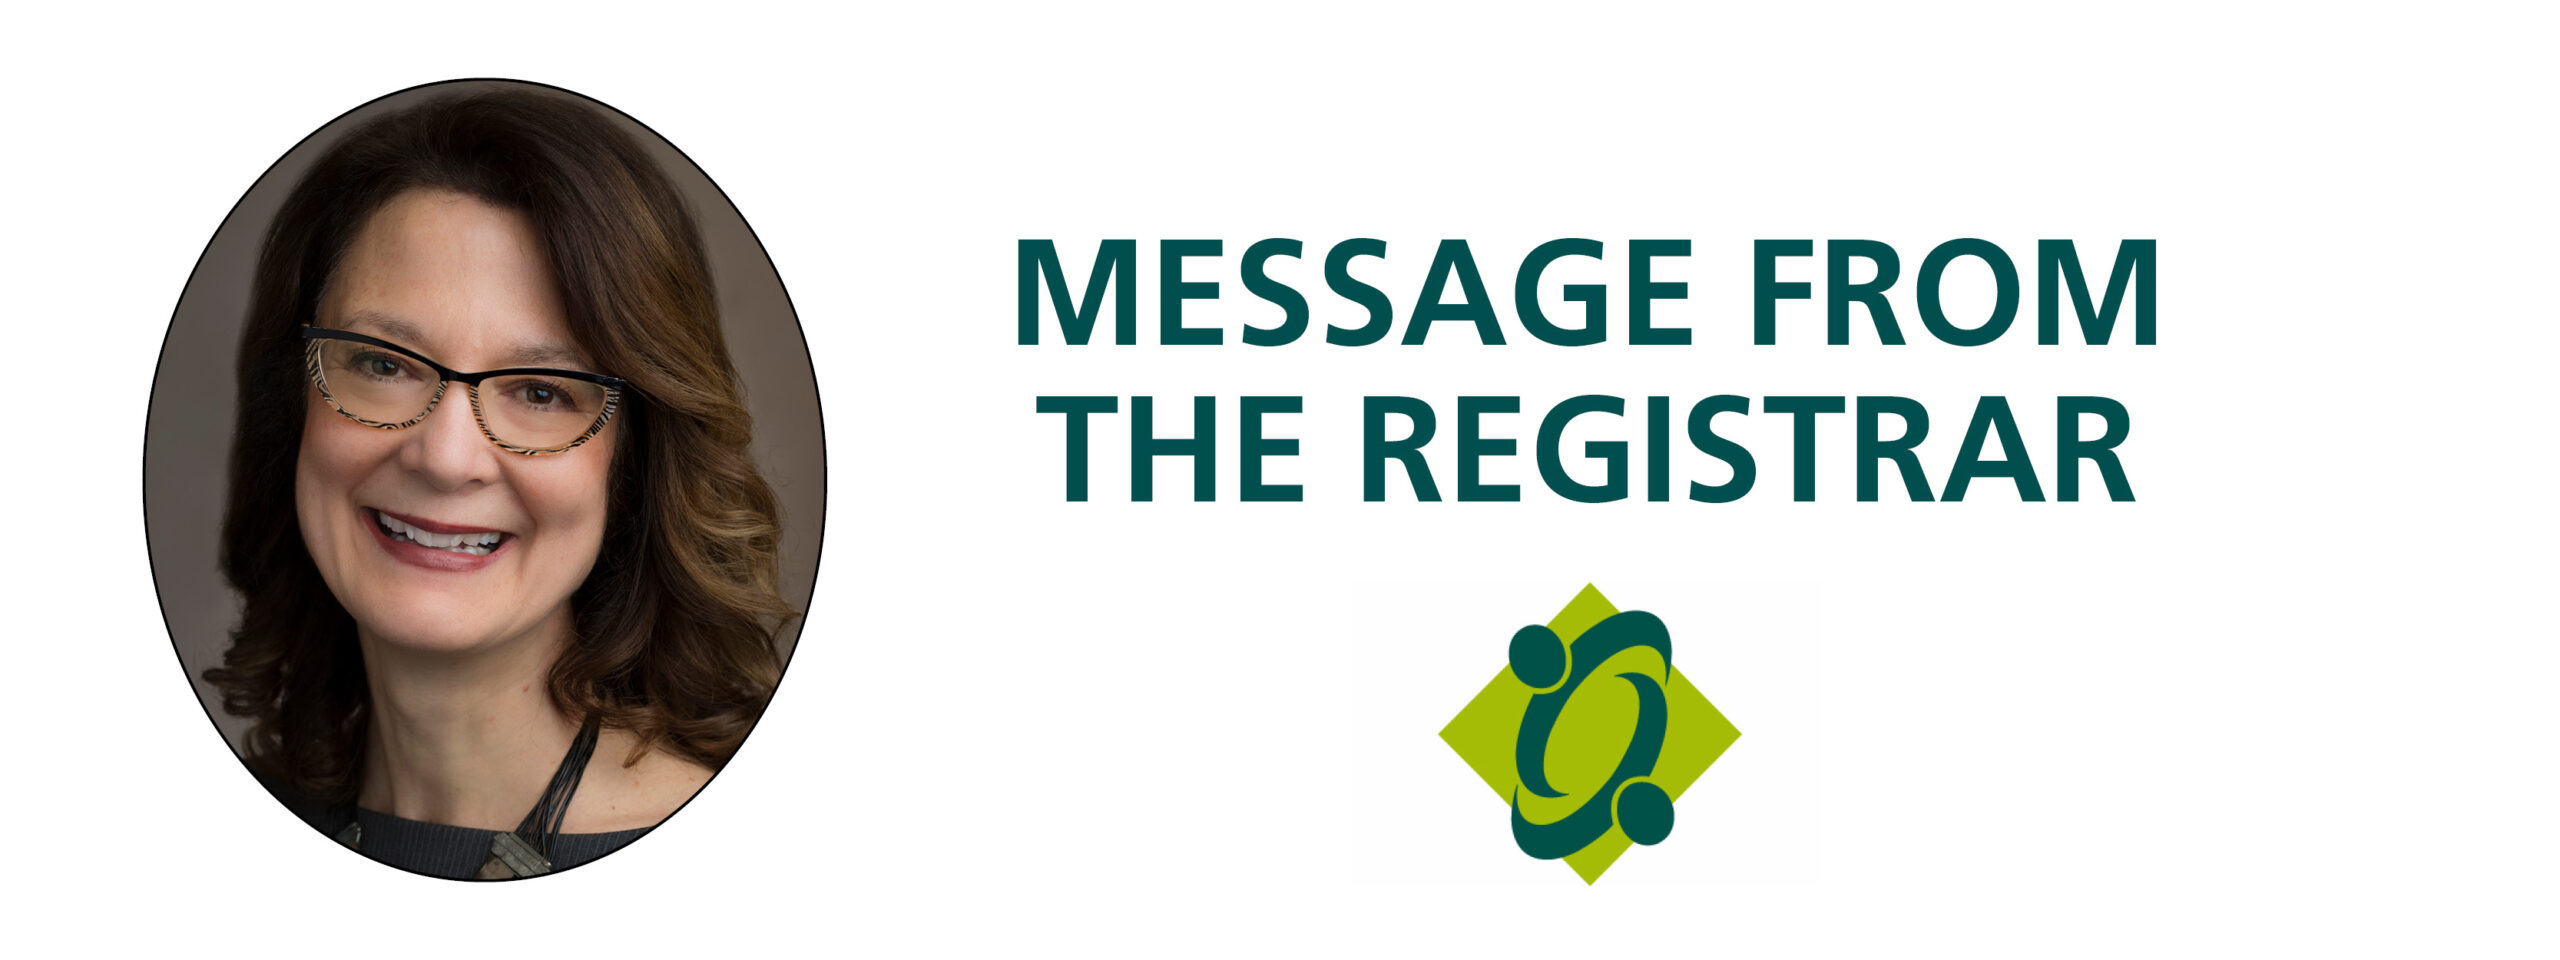 Message from the Registrar: Strengthening Stakeholder and Public Awareness